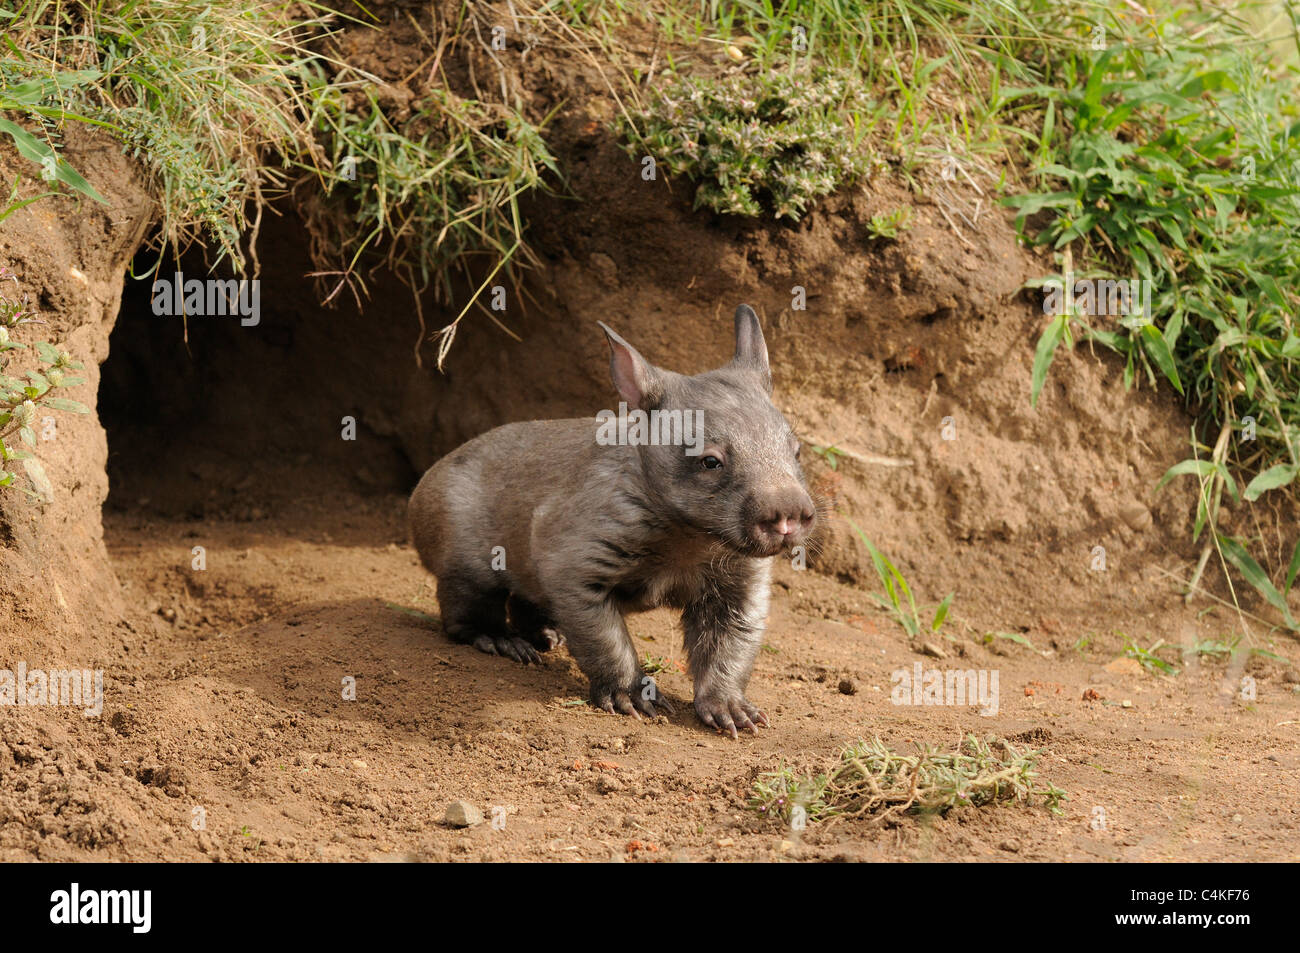 Southern hairy nosed wombat